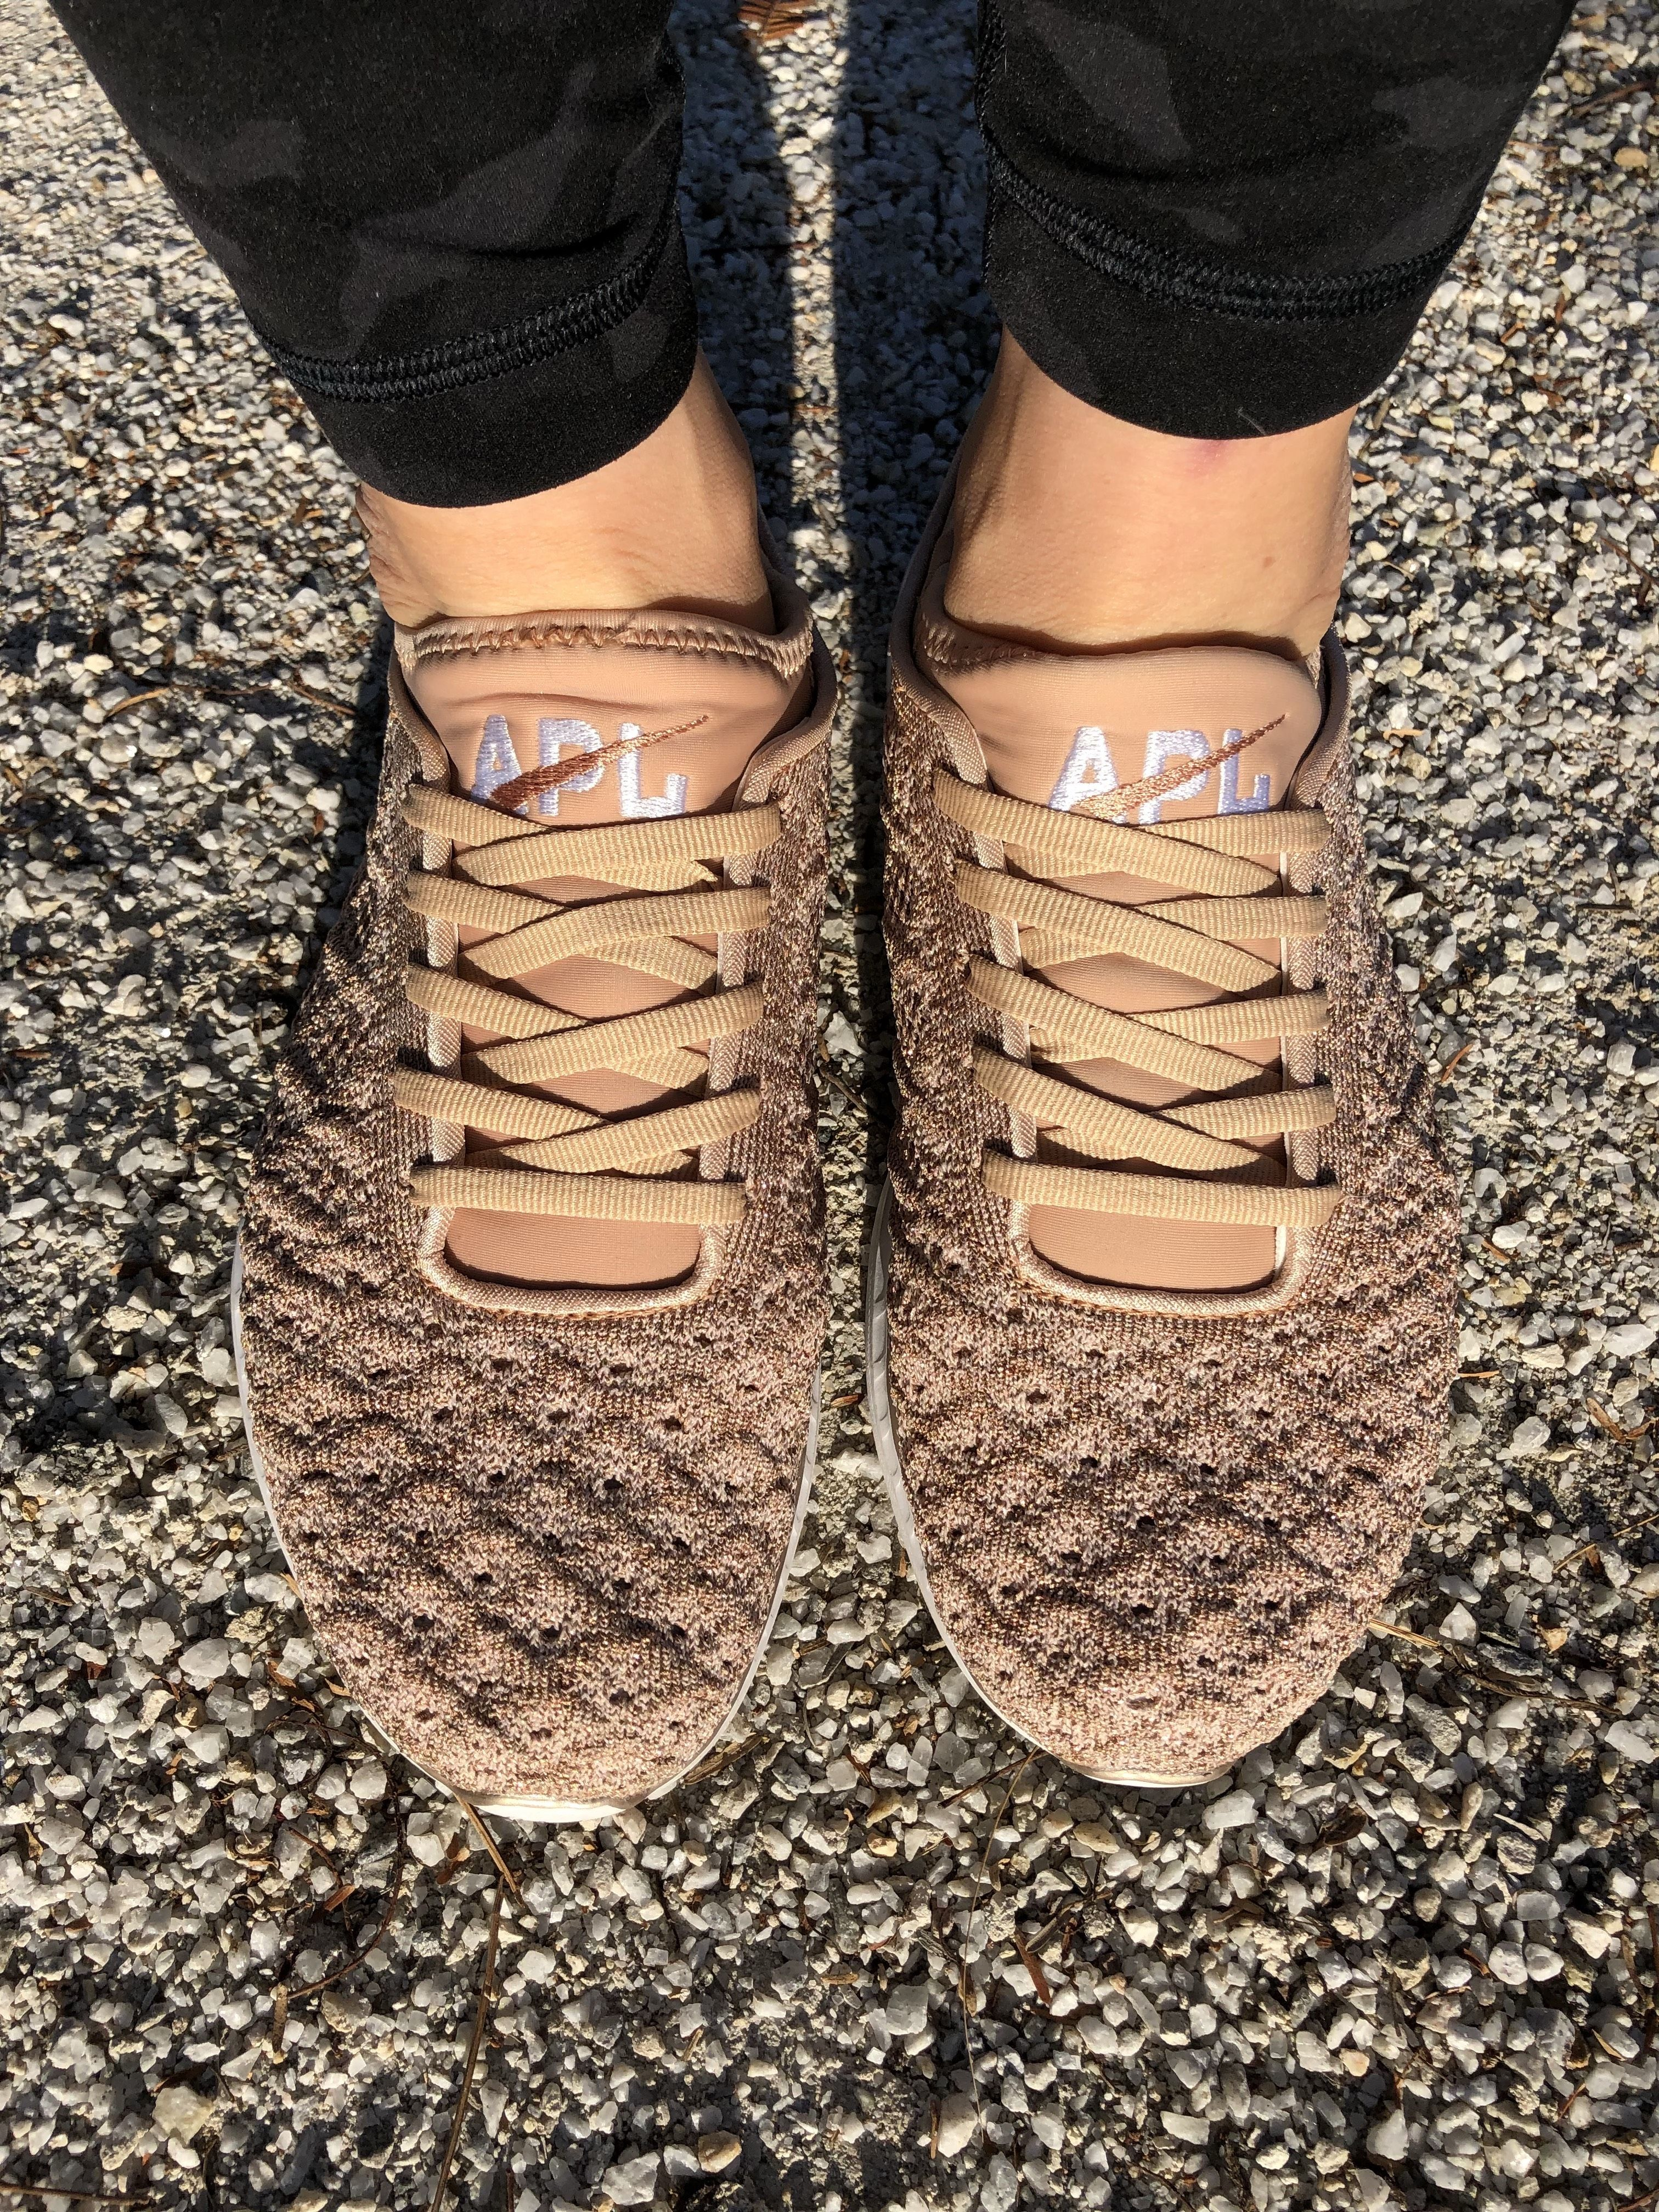 f0774ee6cdd2 Love these rose gold APL running shoes